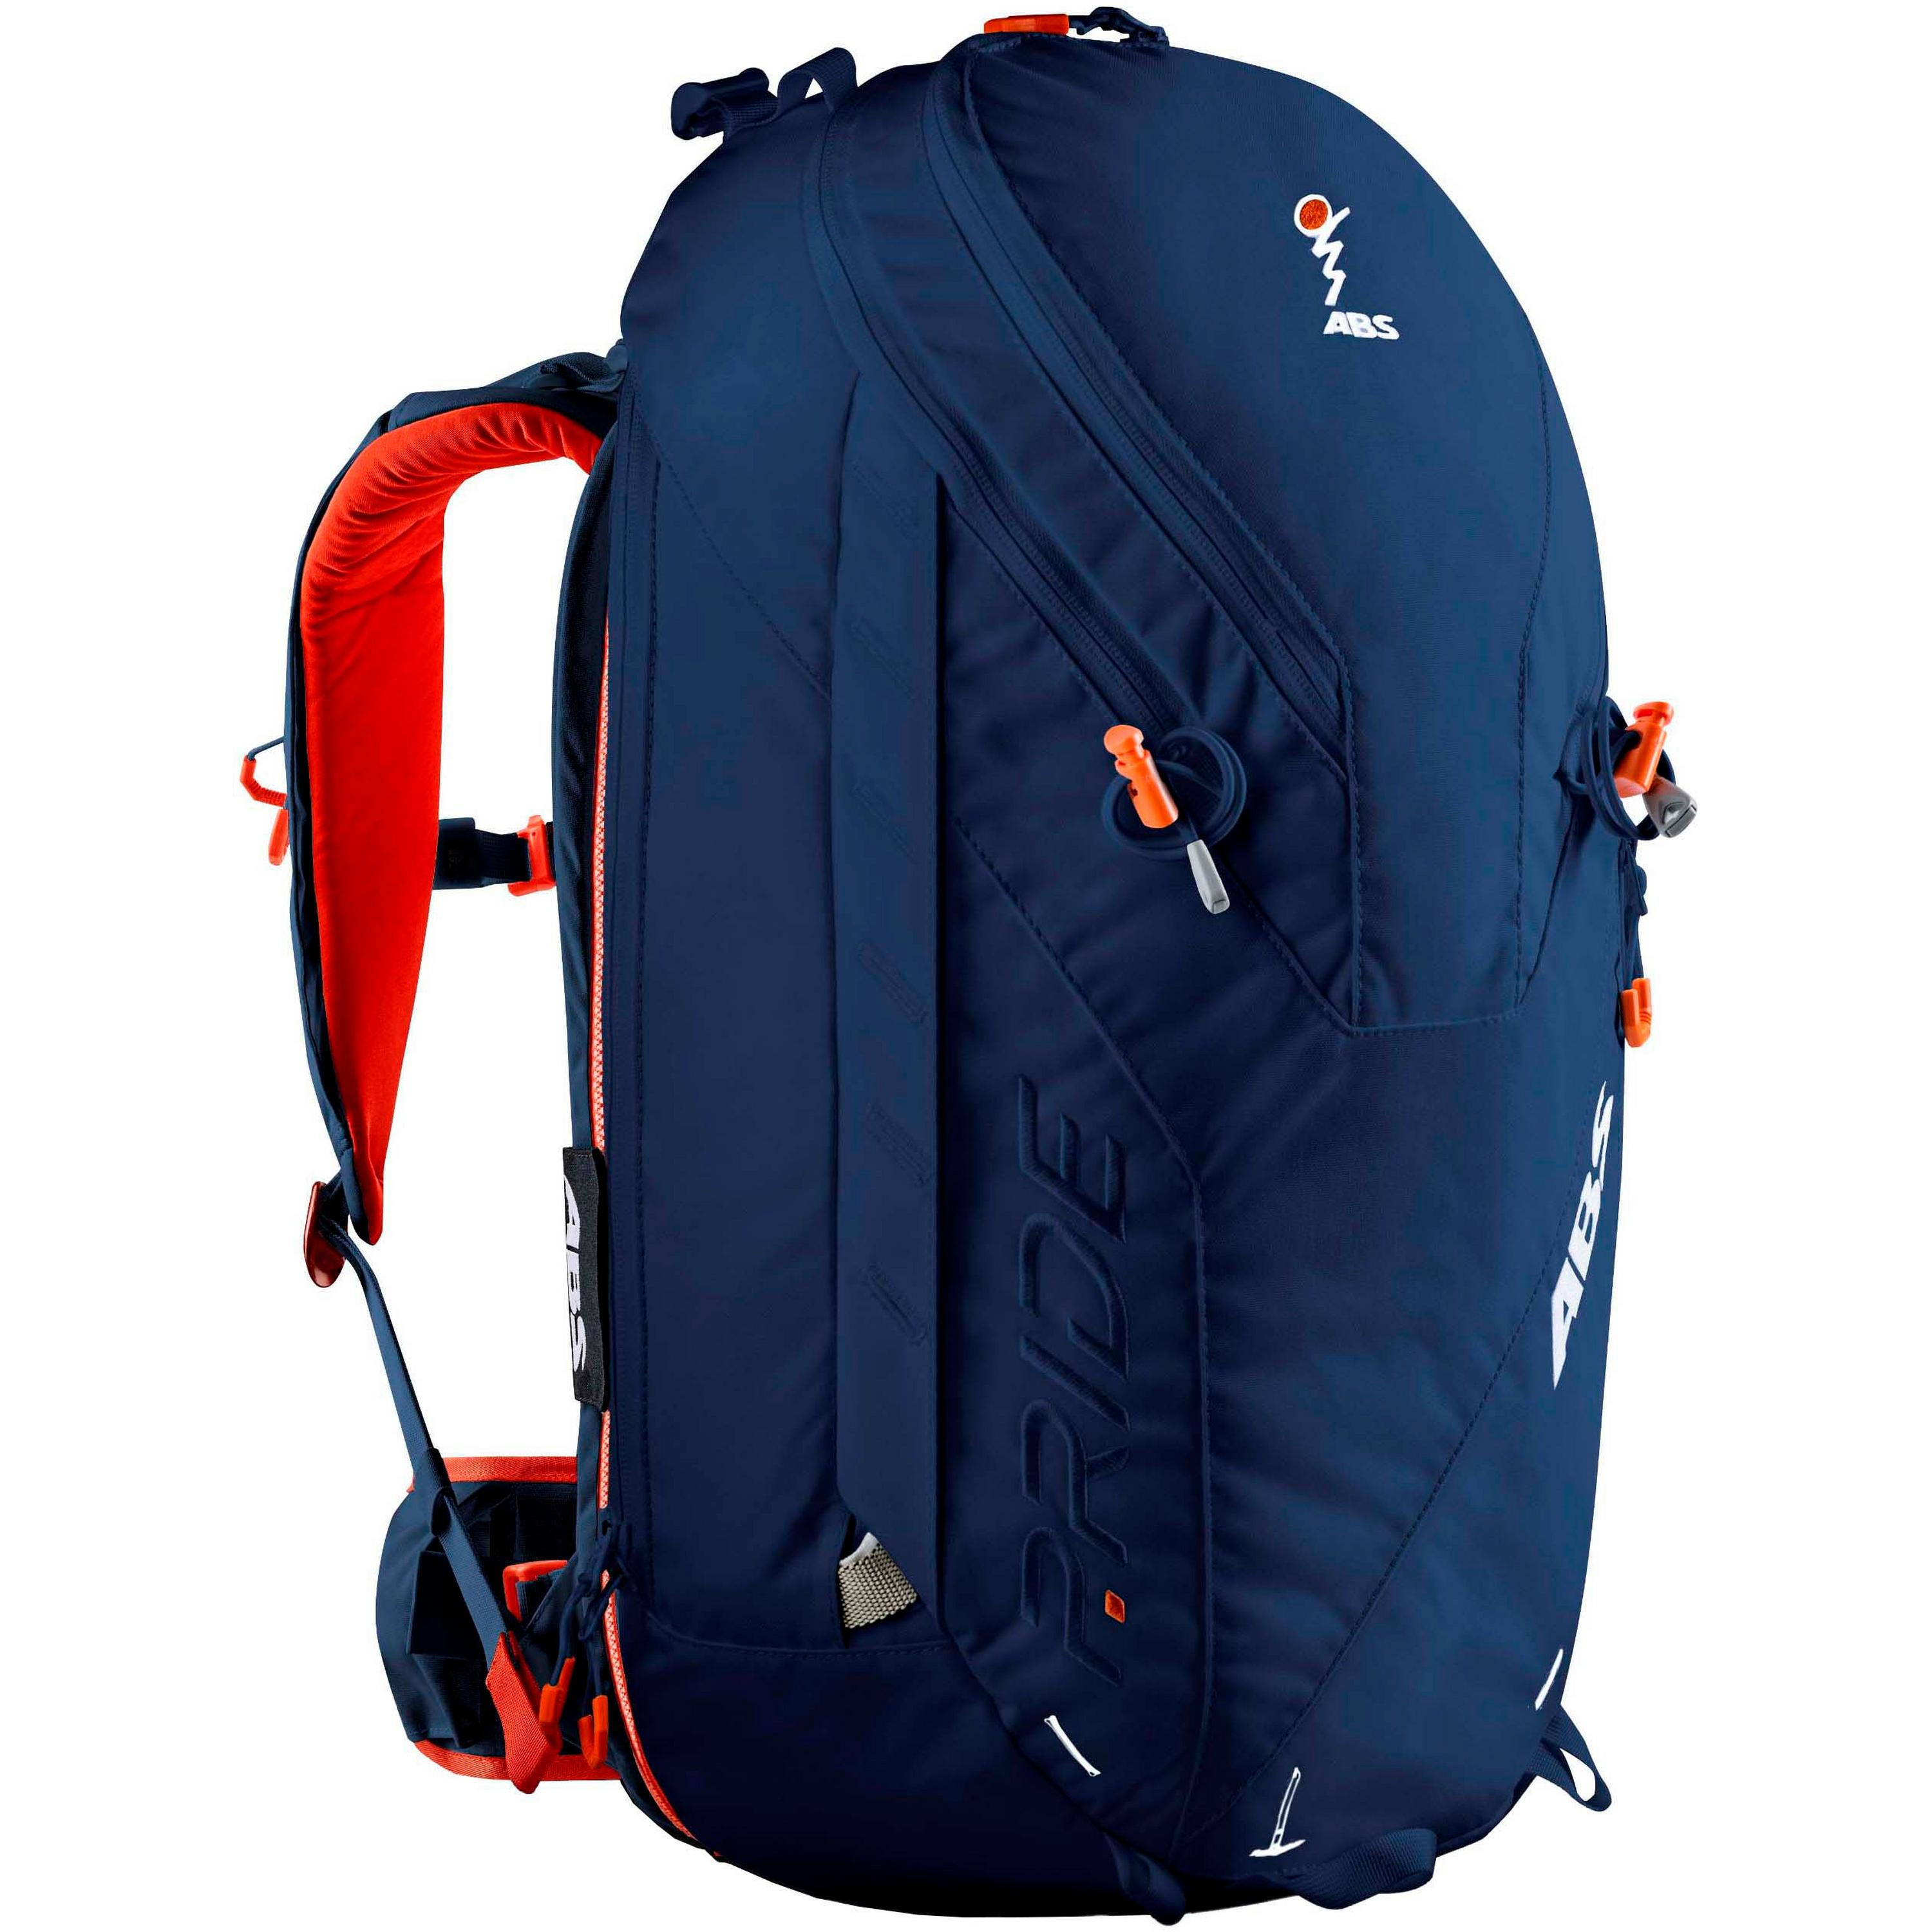 Image of ABS P.Ride 32L Lawinenrucksack